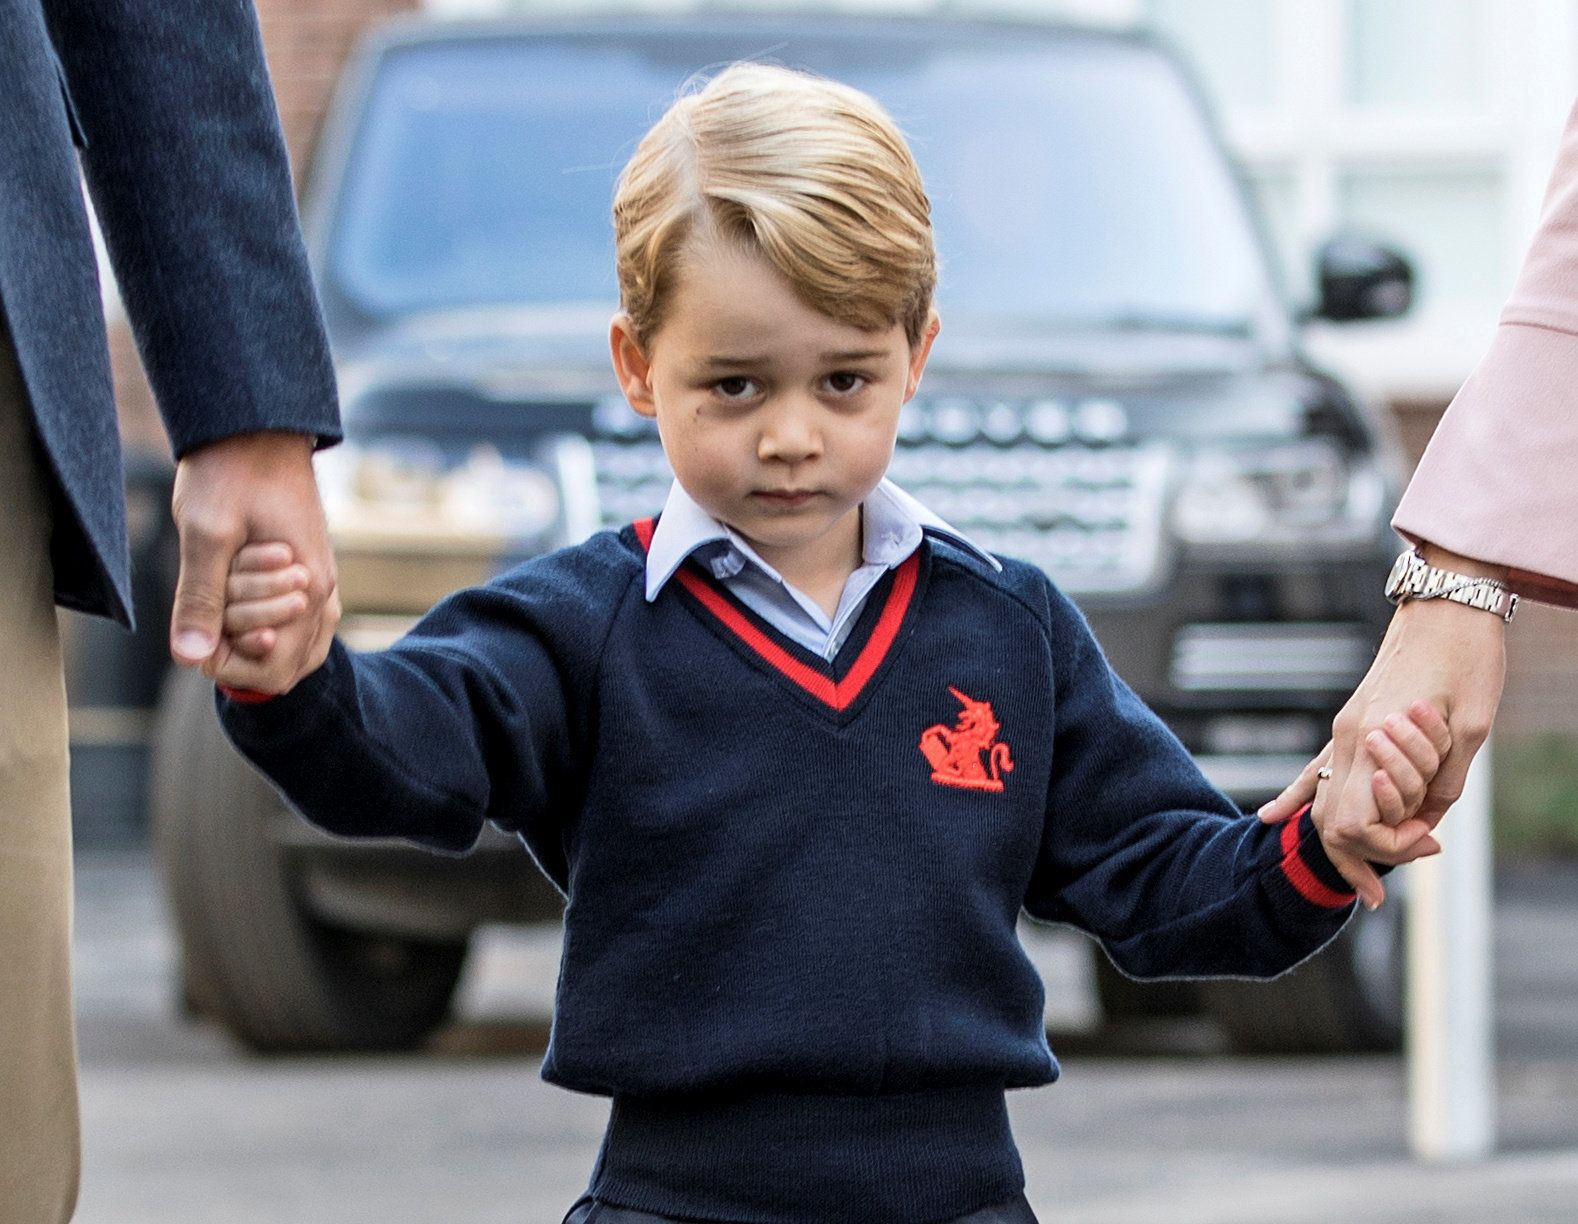 Very Rev. Kelvin Holdsworth's comments about Prince George, 4, resurfaced in the wake of the royal engagement